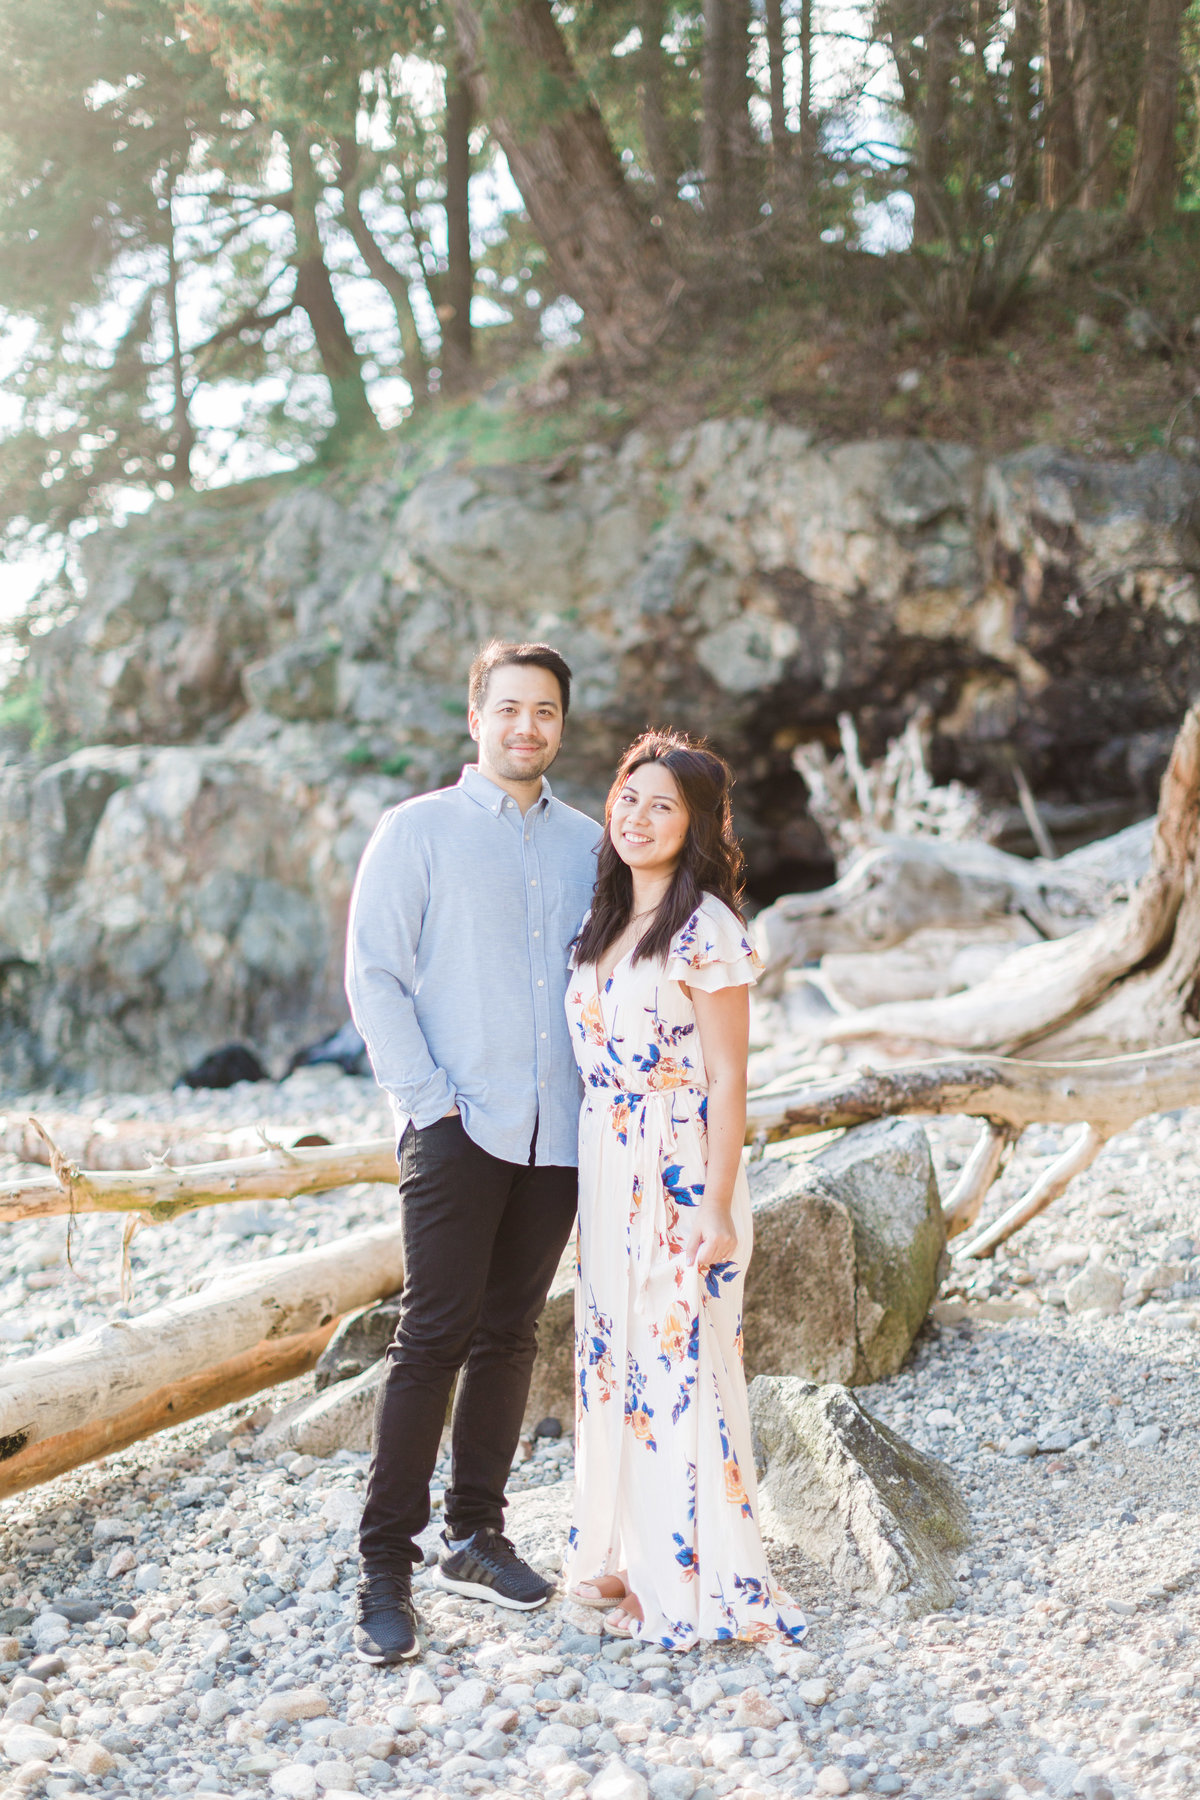 whytecliff-park-engagement-vancouver-blush-sky-photography-10